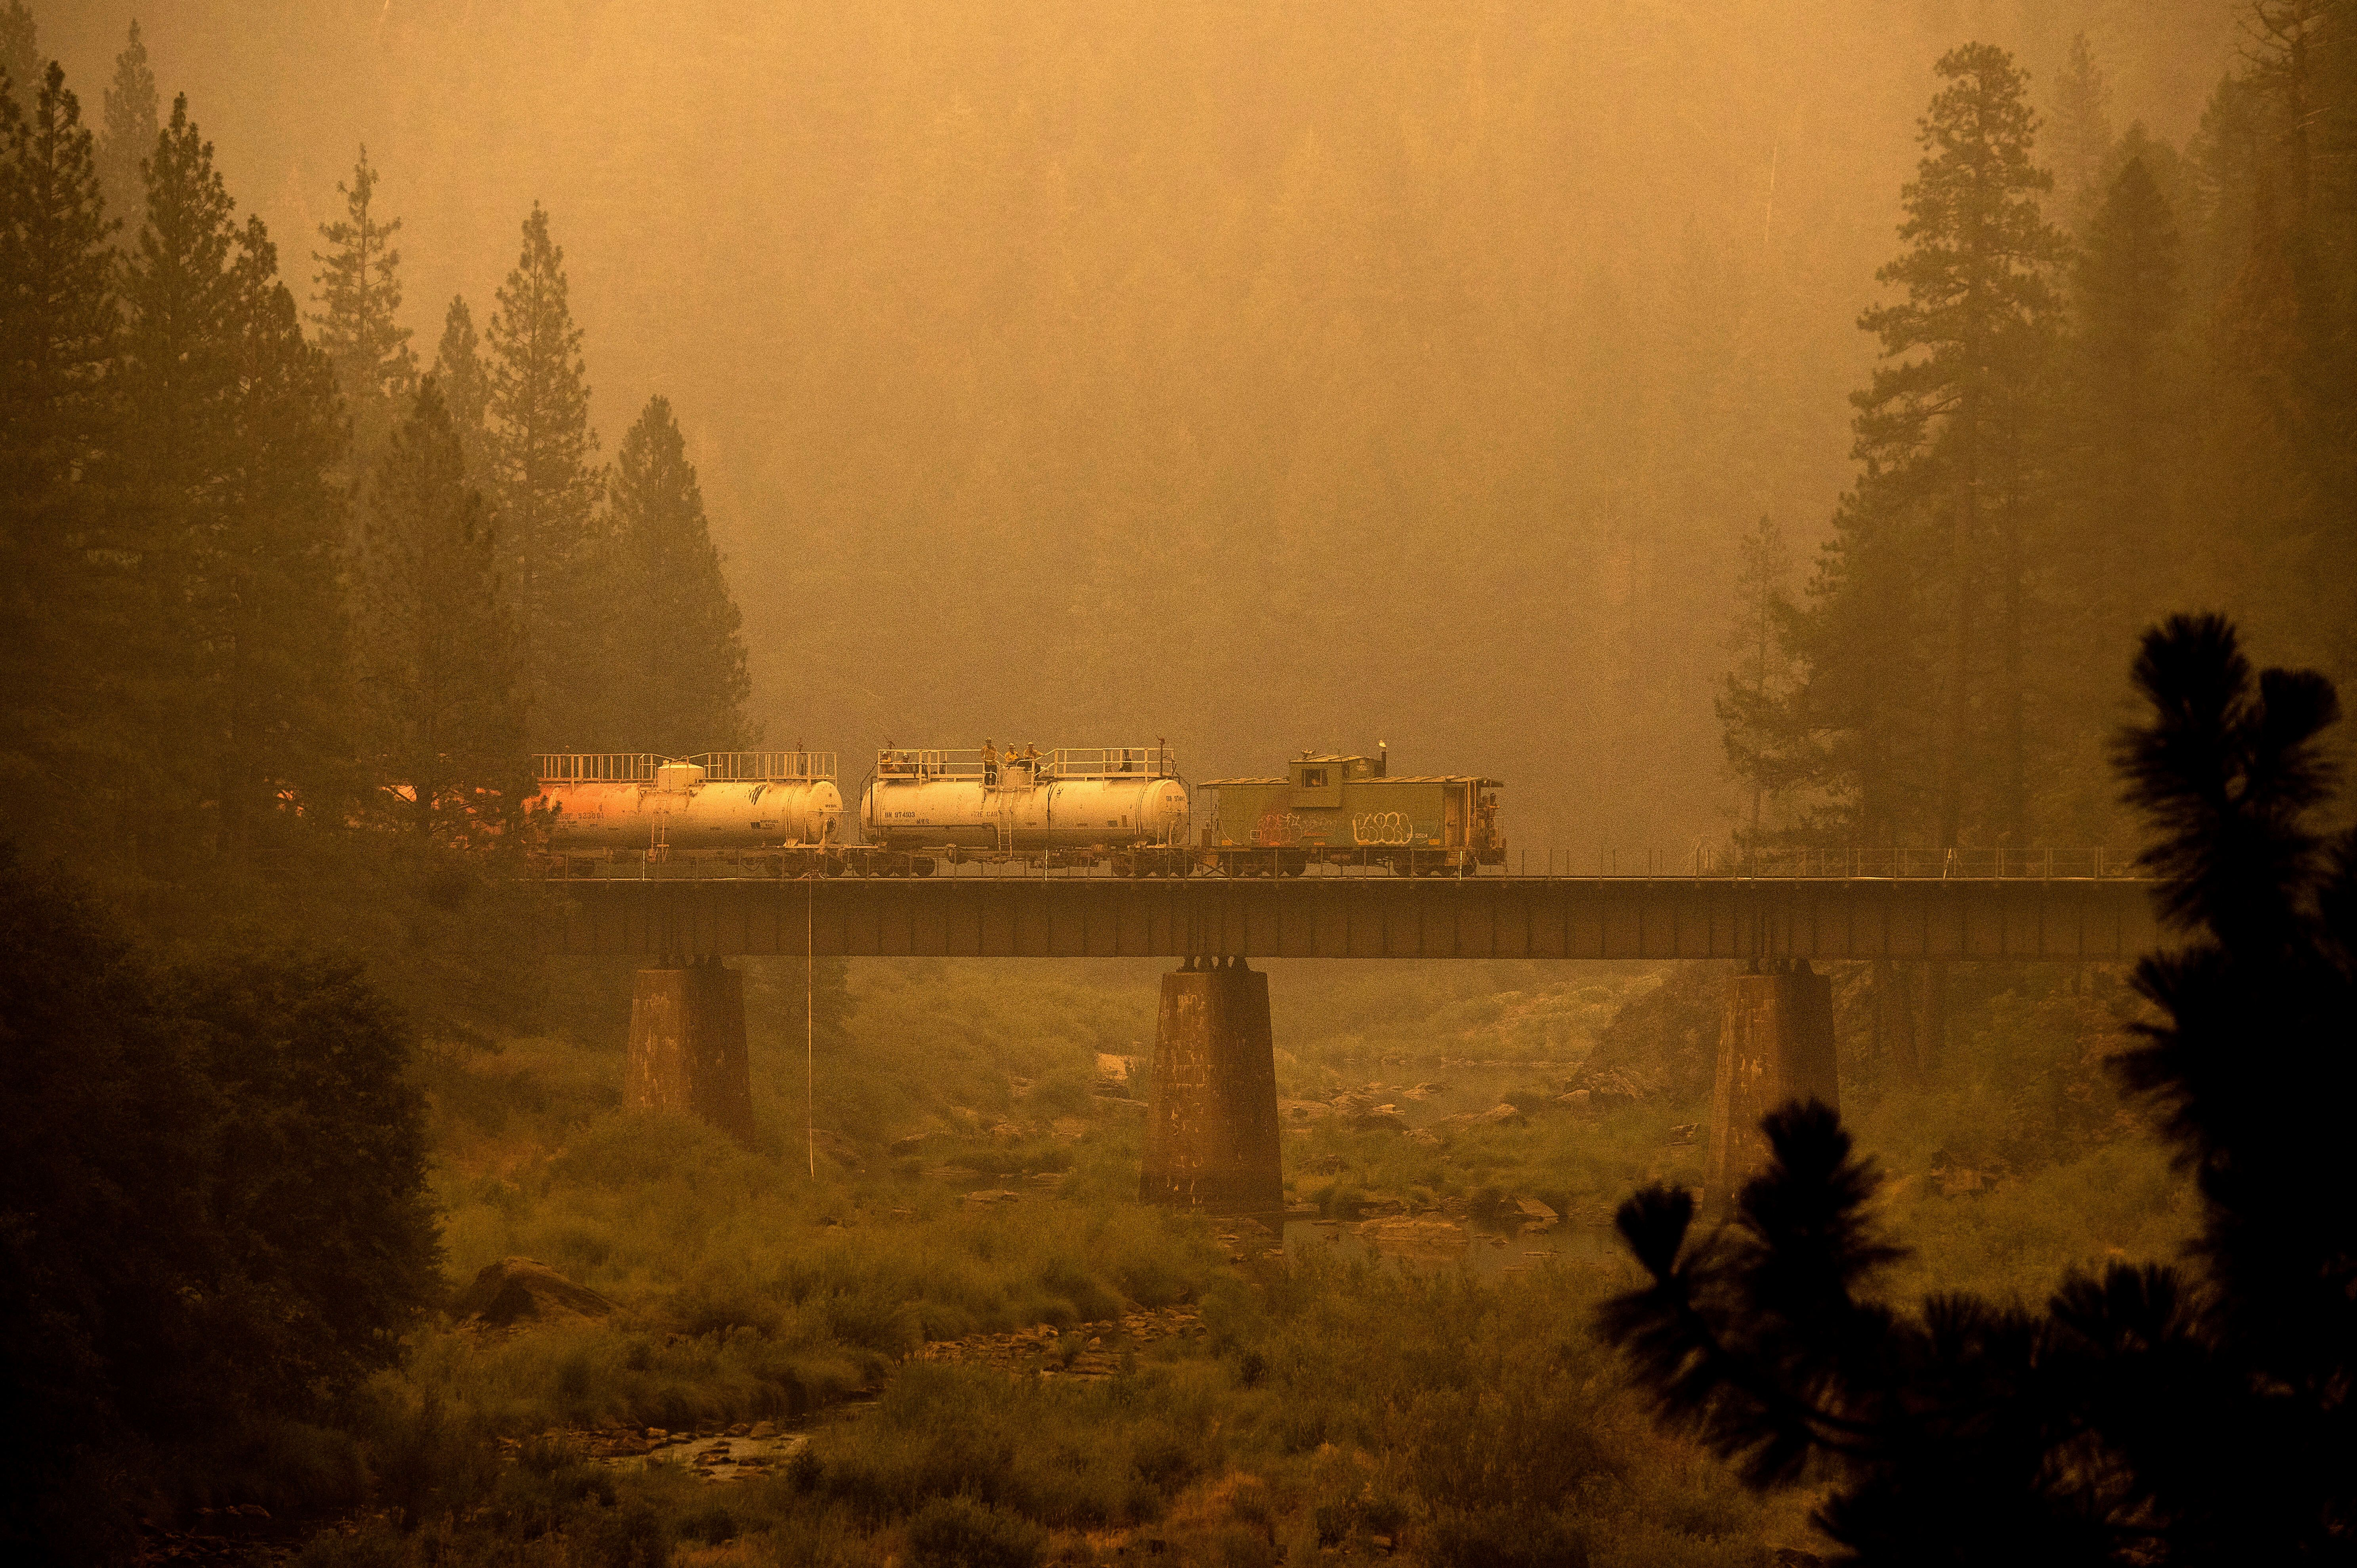 A fire train crosses a bridge as the Dixie Fire burns in Plumas County, Calif., on Saturday. The train is capable of spraying